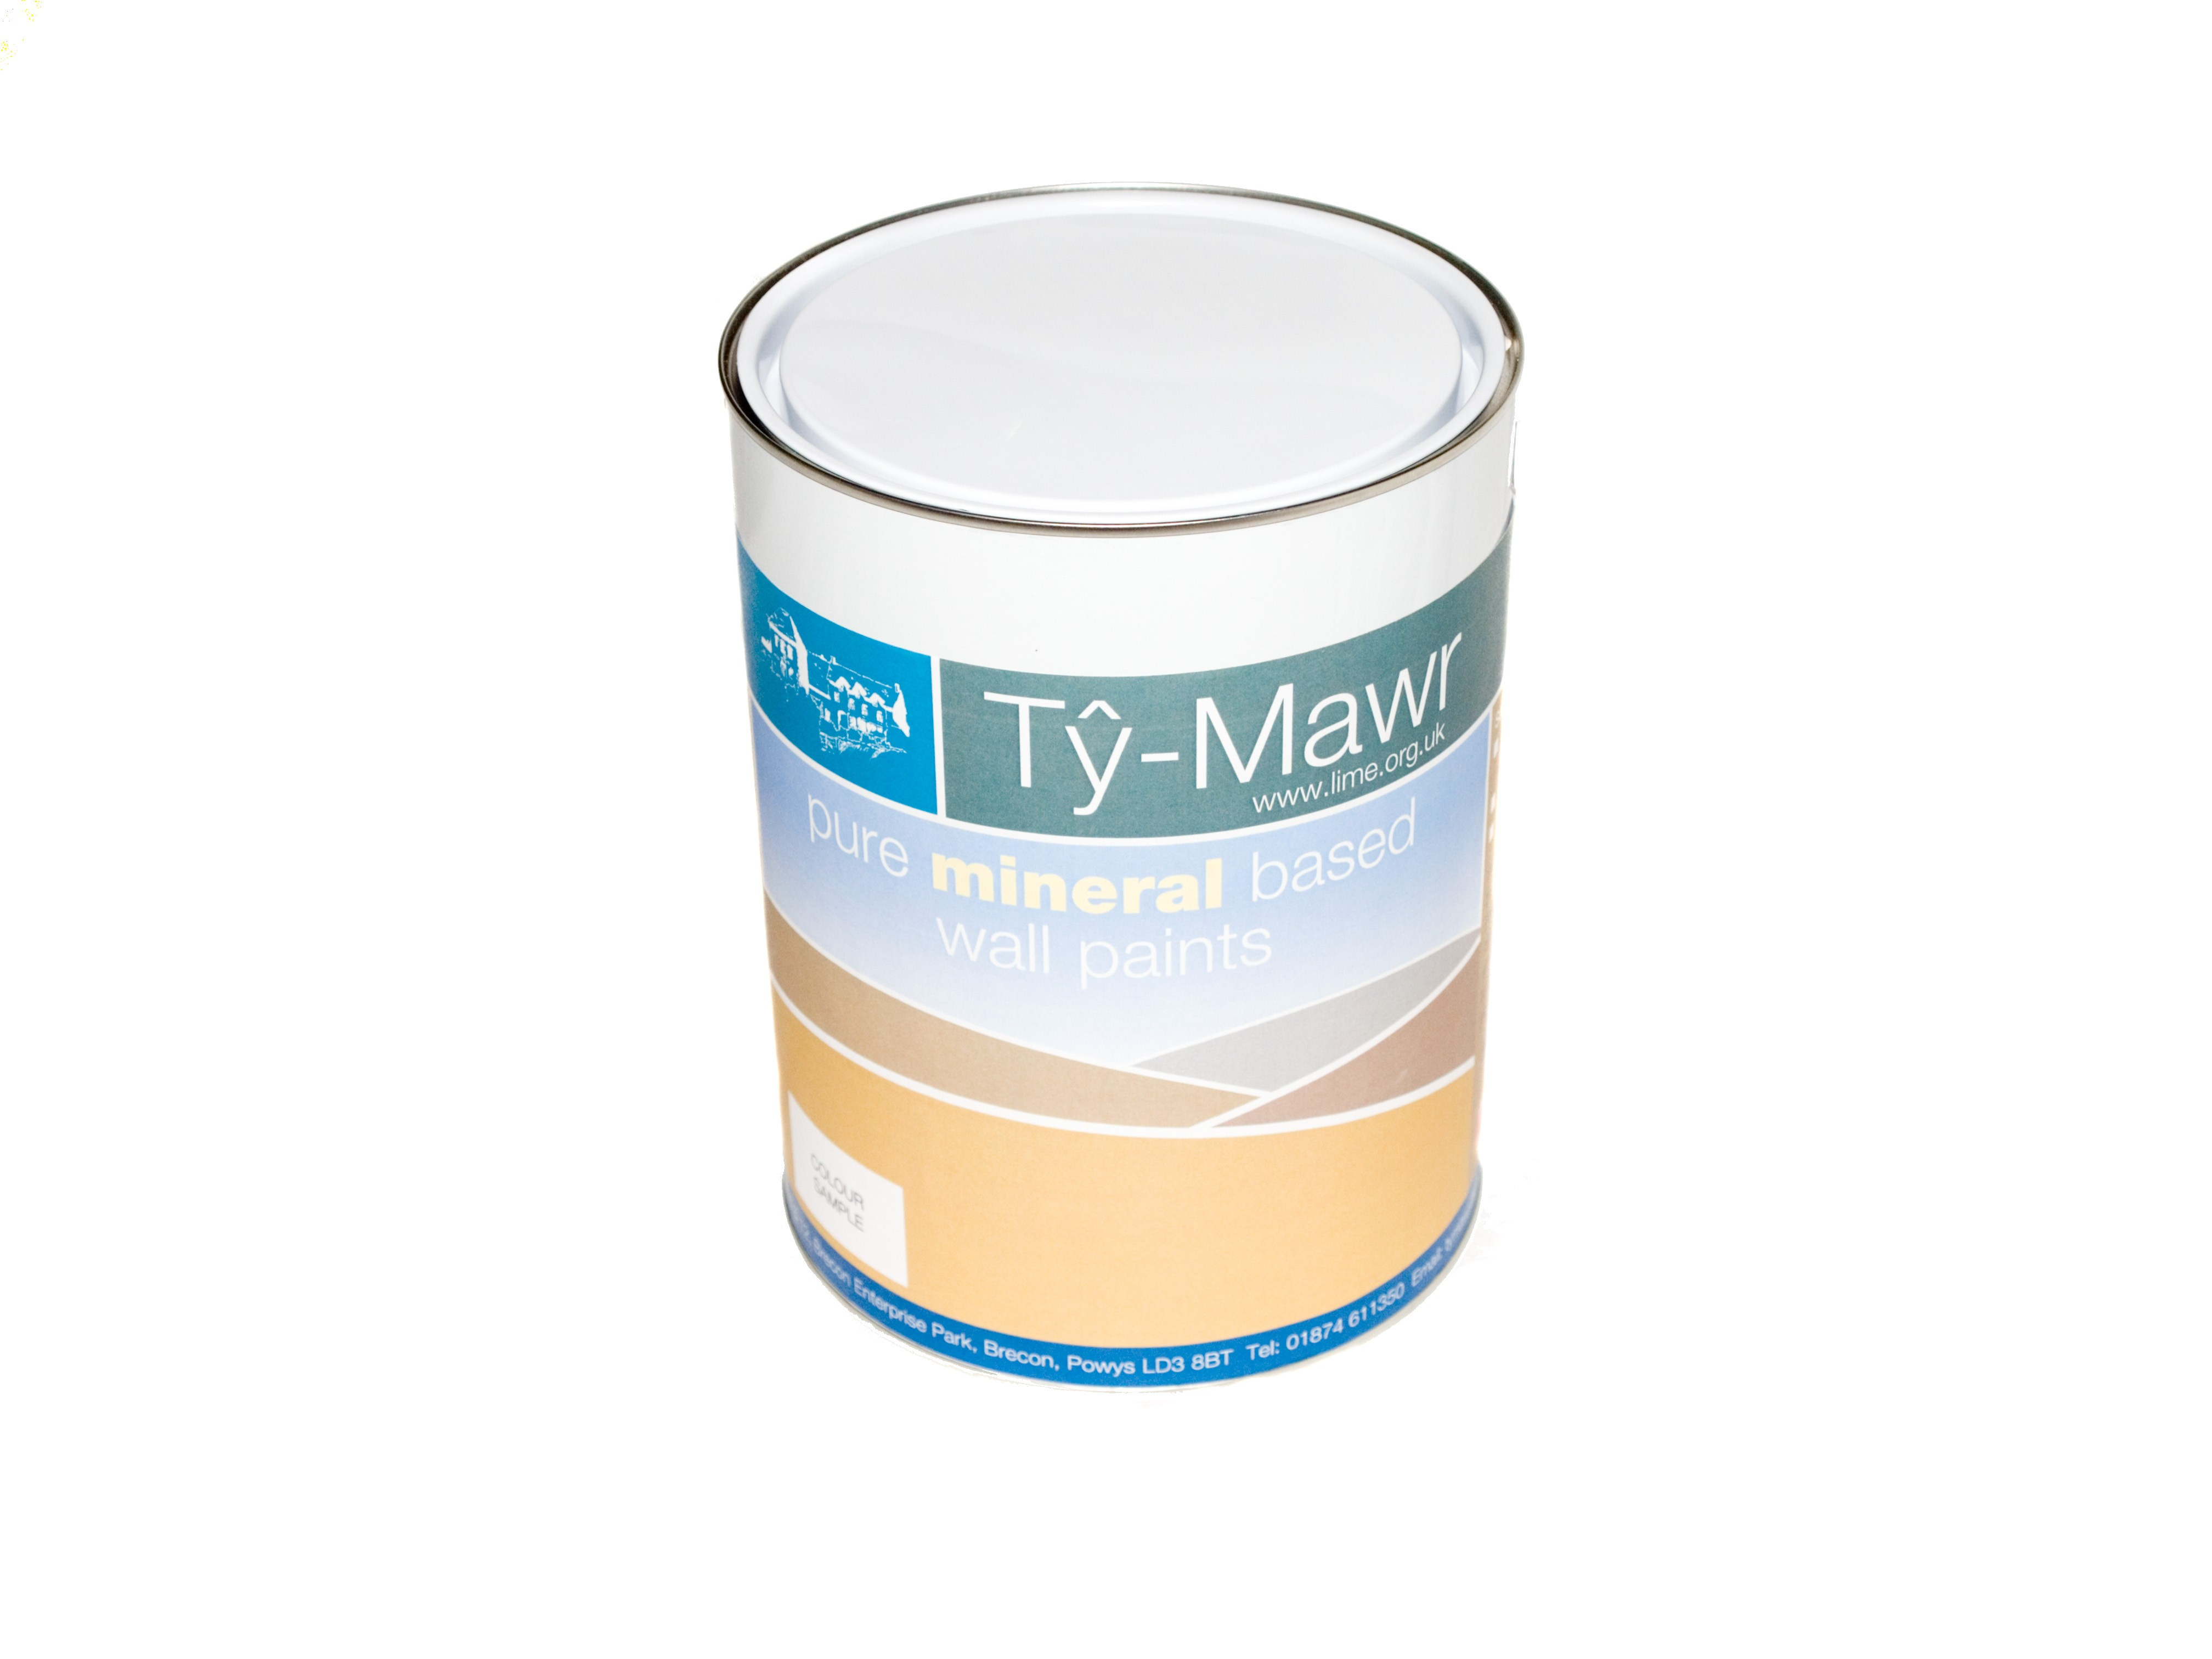 Ty-Mawr's Beeckosil Pure Mineral Based Paints - Colours of Wales